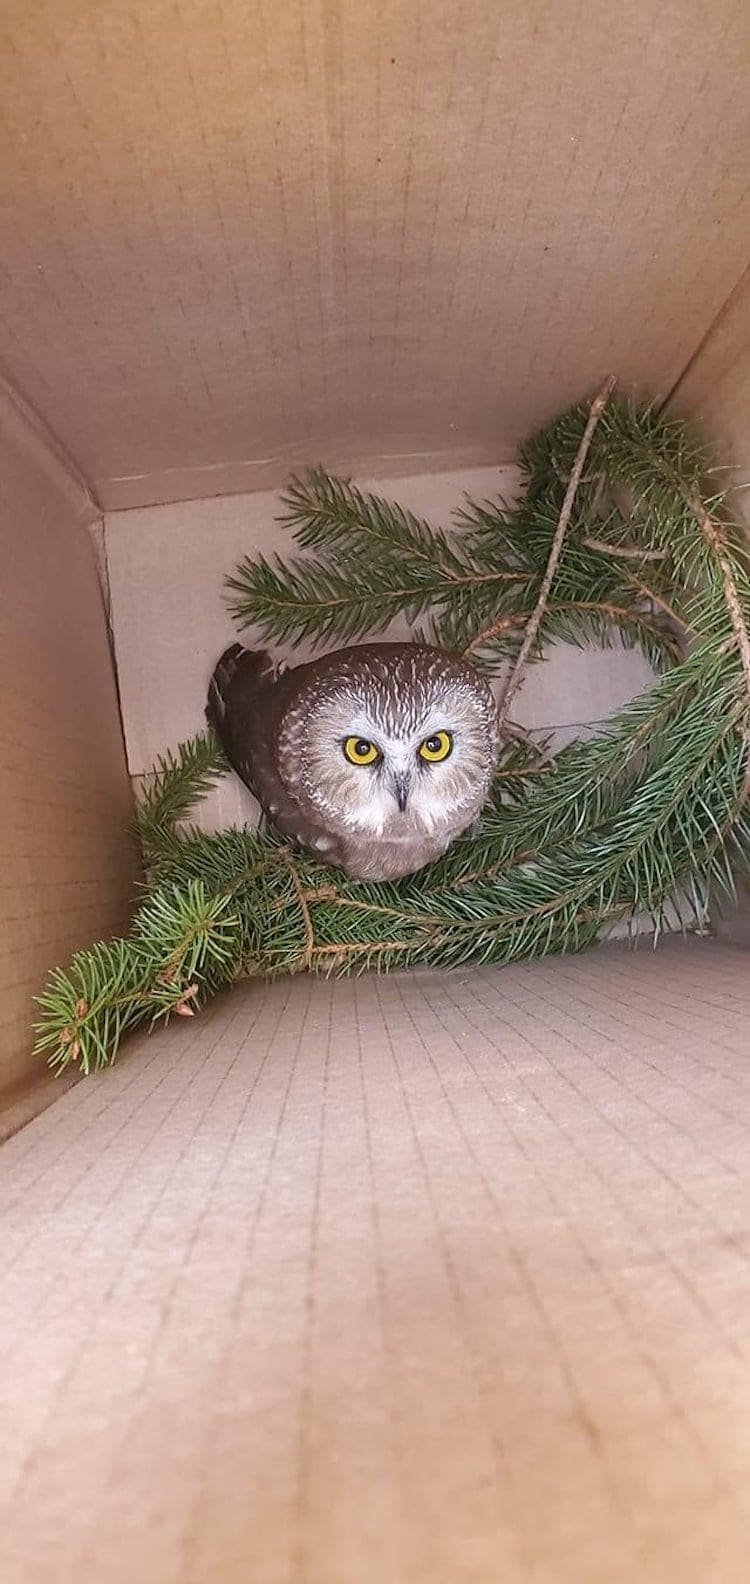 Tiny Owl Rescued From Rockefeller Center Christmas Tree